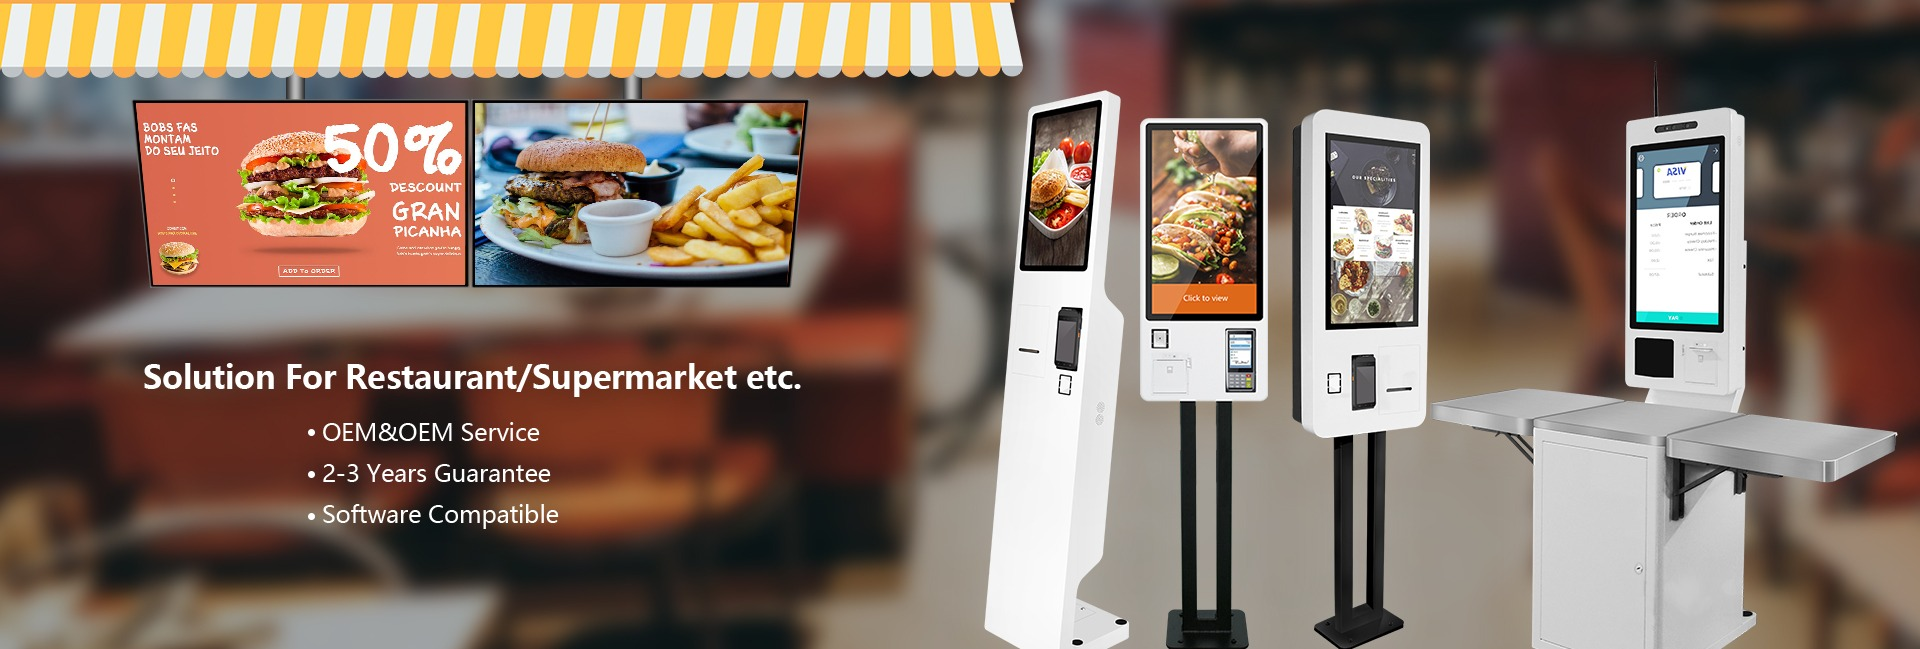 epos system prices uk Digital Screens and self order kiosk